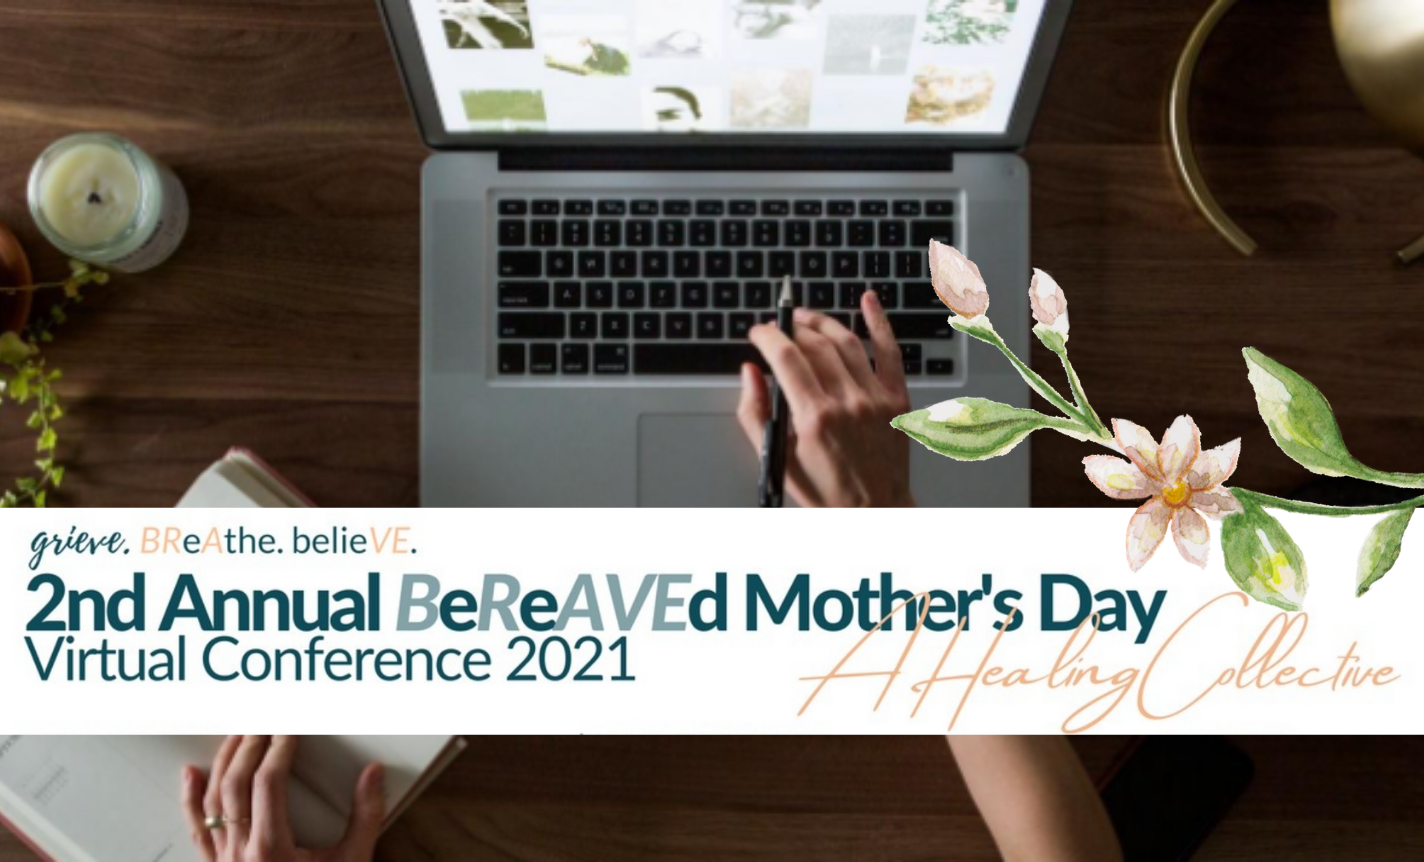 Bereaved Mother's Day: Virtual Conference